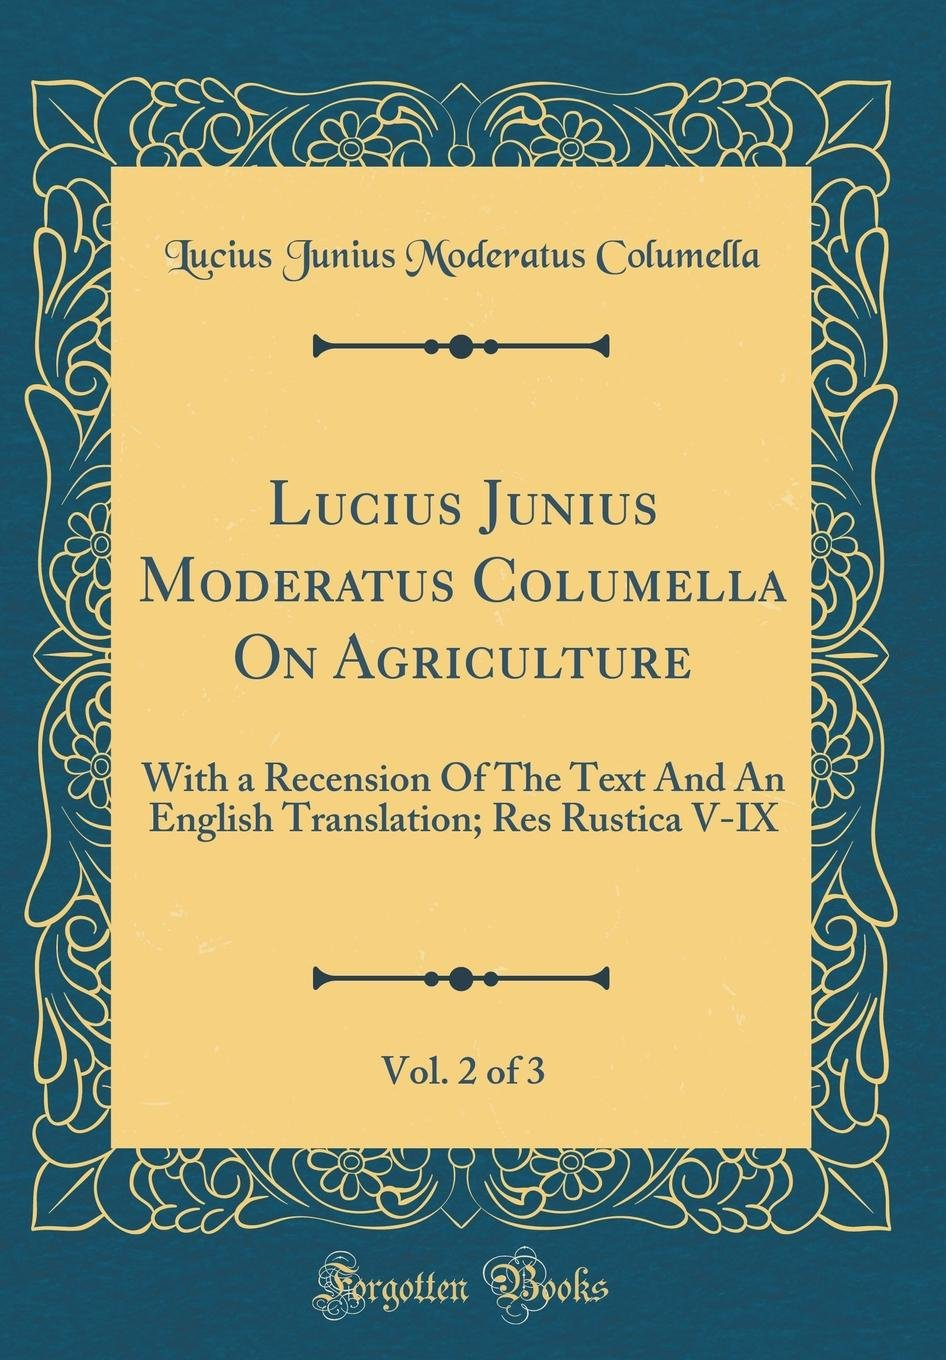 Lucius Junius Moderatus Columella on Agriculture, Vol. 2 of 3: With a Recension of the Text and an English Translation; Res Rustica V-IX (Classic Reprint) (Latin Edition) pdf epub